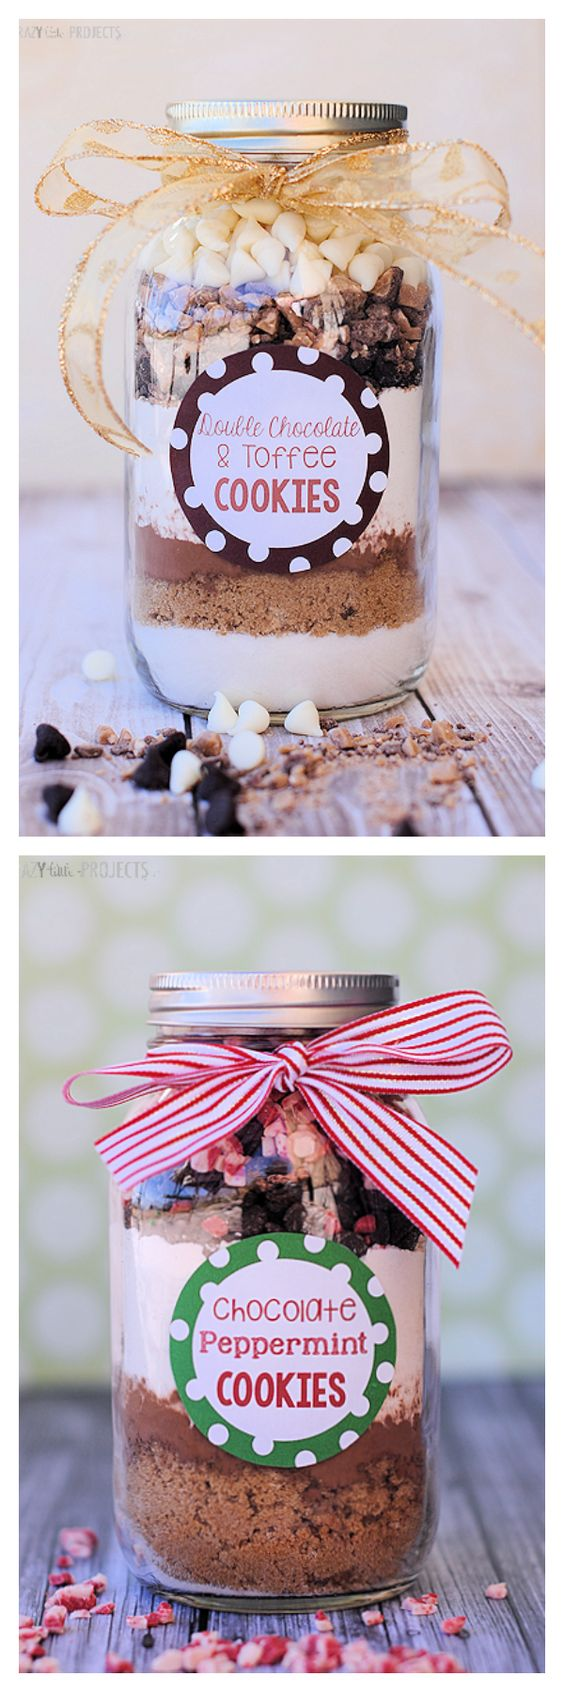 Two for one - double chocolate toffee or chocolate peppermint - great Christmas gifts presented in a mason jar!